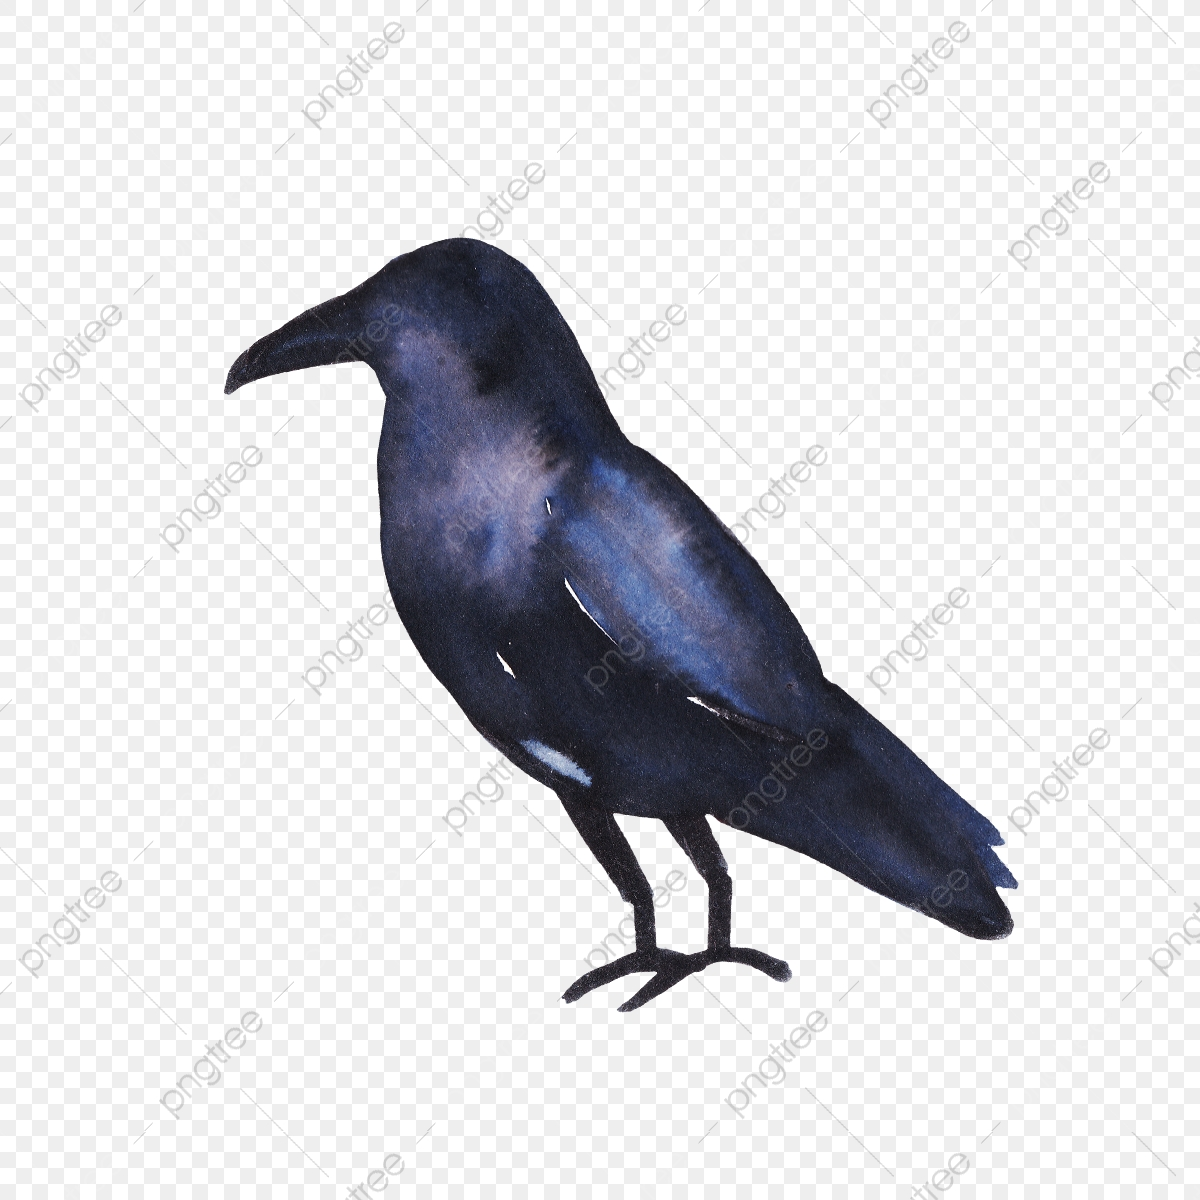 Crow Silhouette Watercolor Horror Spooky Corpse Png Transparent Clipart Image And Psd File For Free Download Learn how to import images, change the colour balance, use hue and saturation, use layer masks and select objects using a variety of selection tools. https pngtree com freepng crow silhouette watercolor 5194465 html